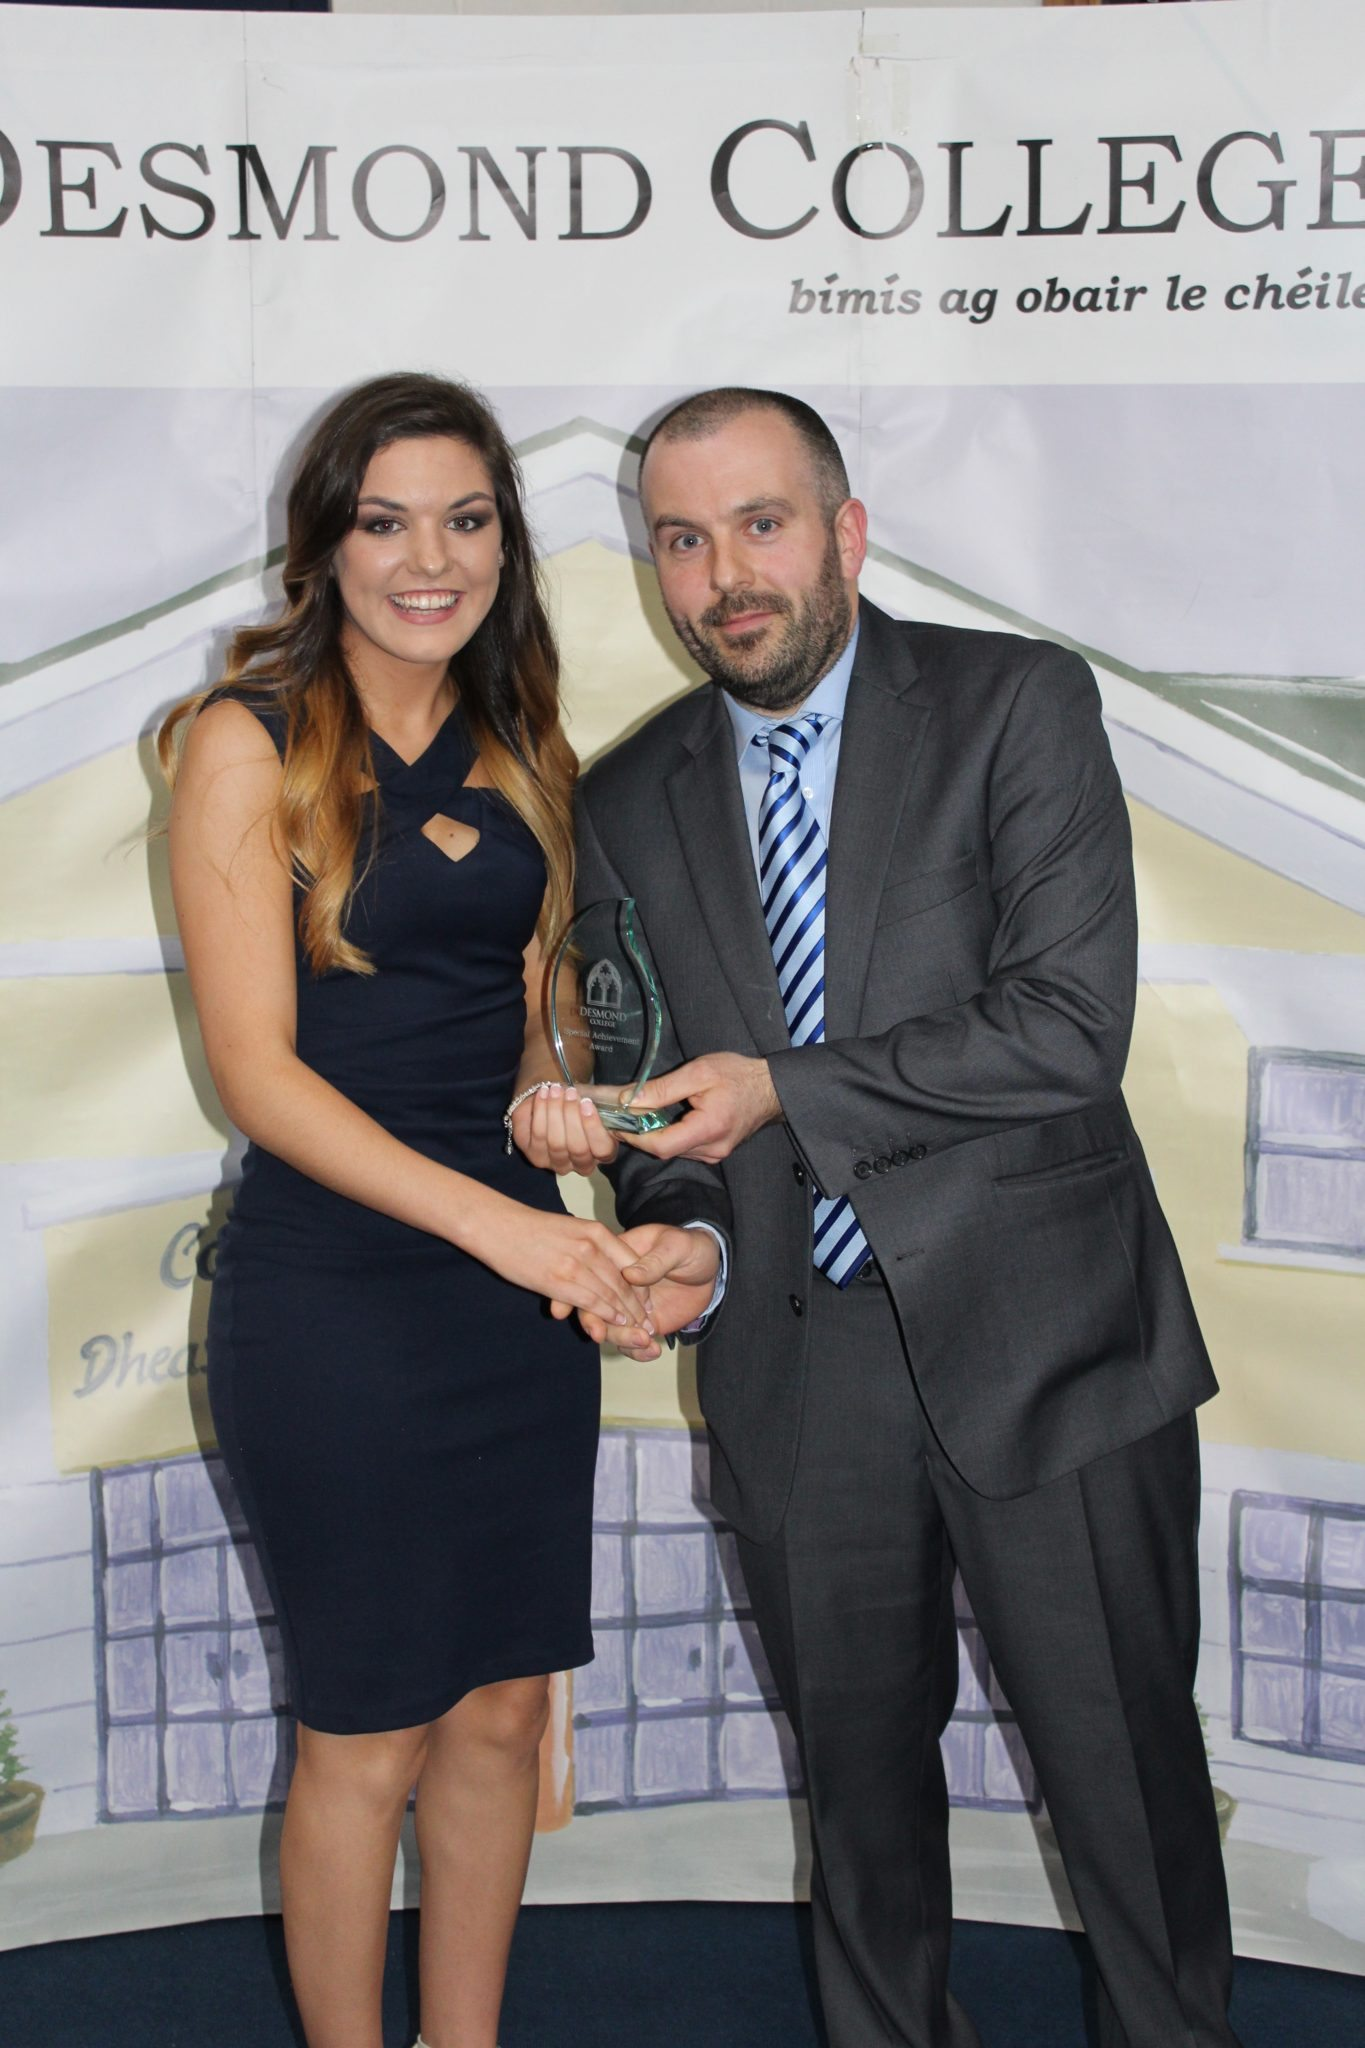 Desmond College Leaving Certificate Graduation 2015: Dedication and Commitment Award: Amy Cussen with Mr. Culhane